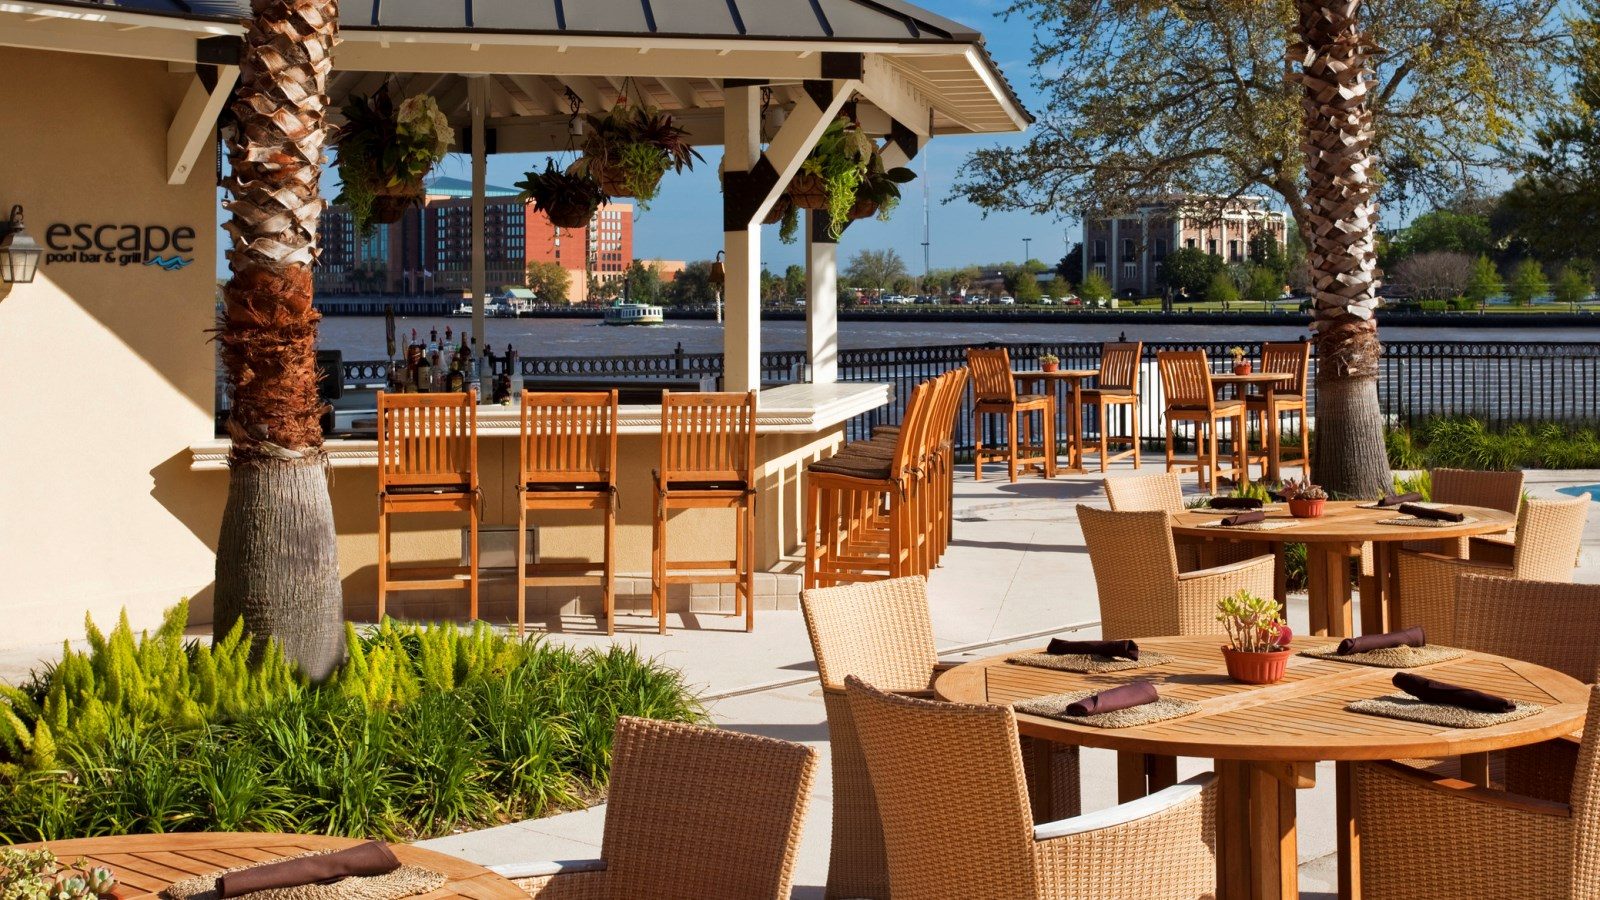 Escape Pool Bar | The Westin Savannah Harbor Golf Resort & Spa